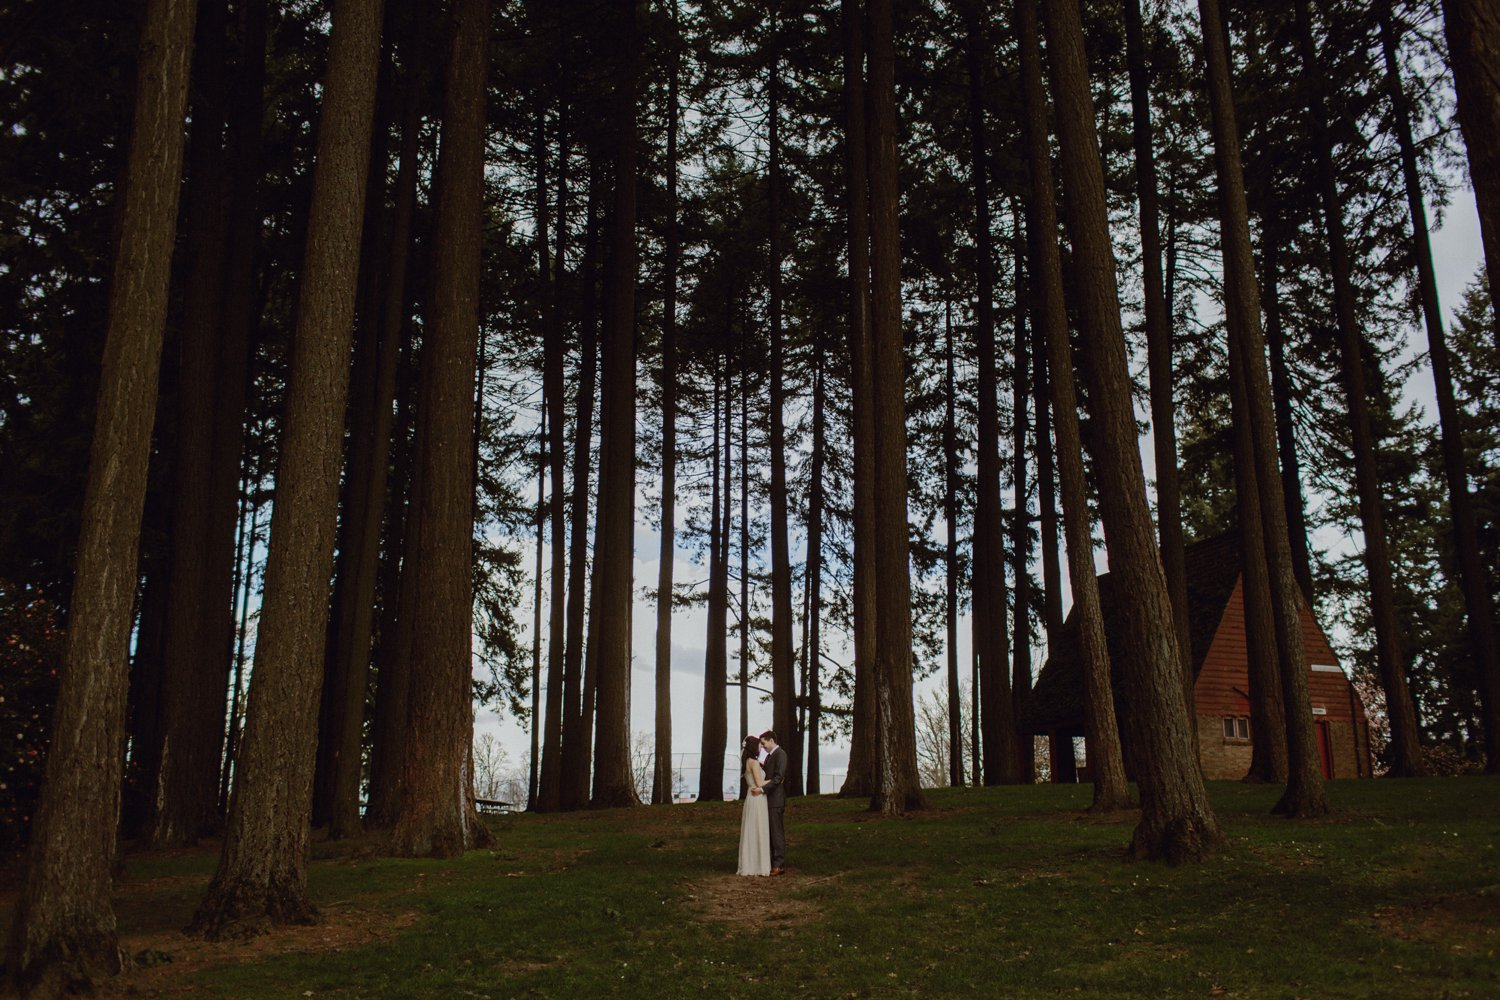 A photo of a wedding couple in a Portland Oregon forest